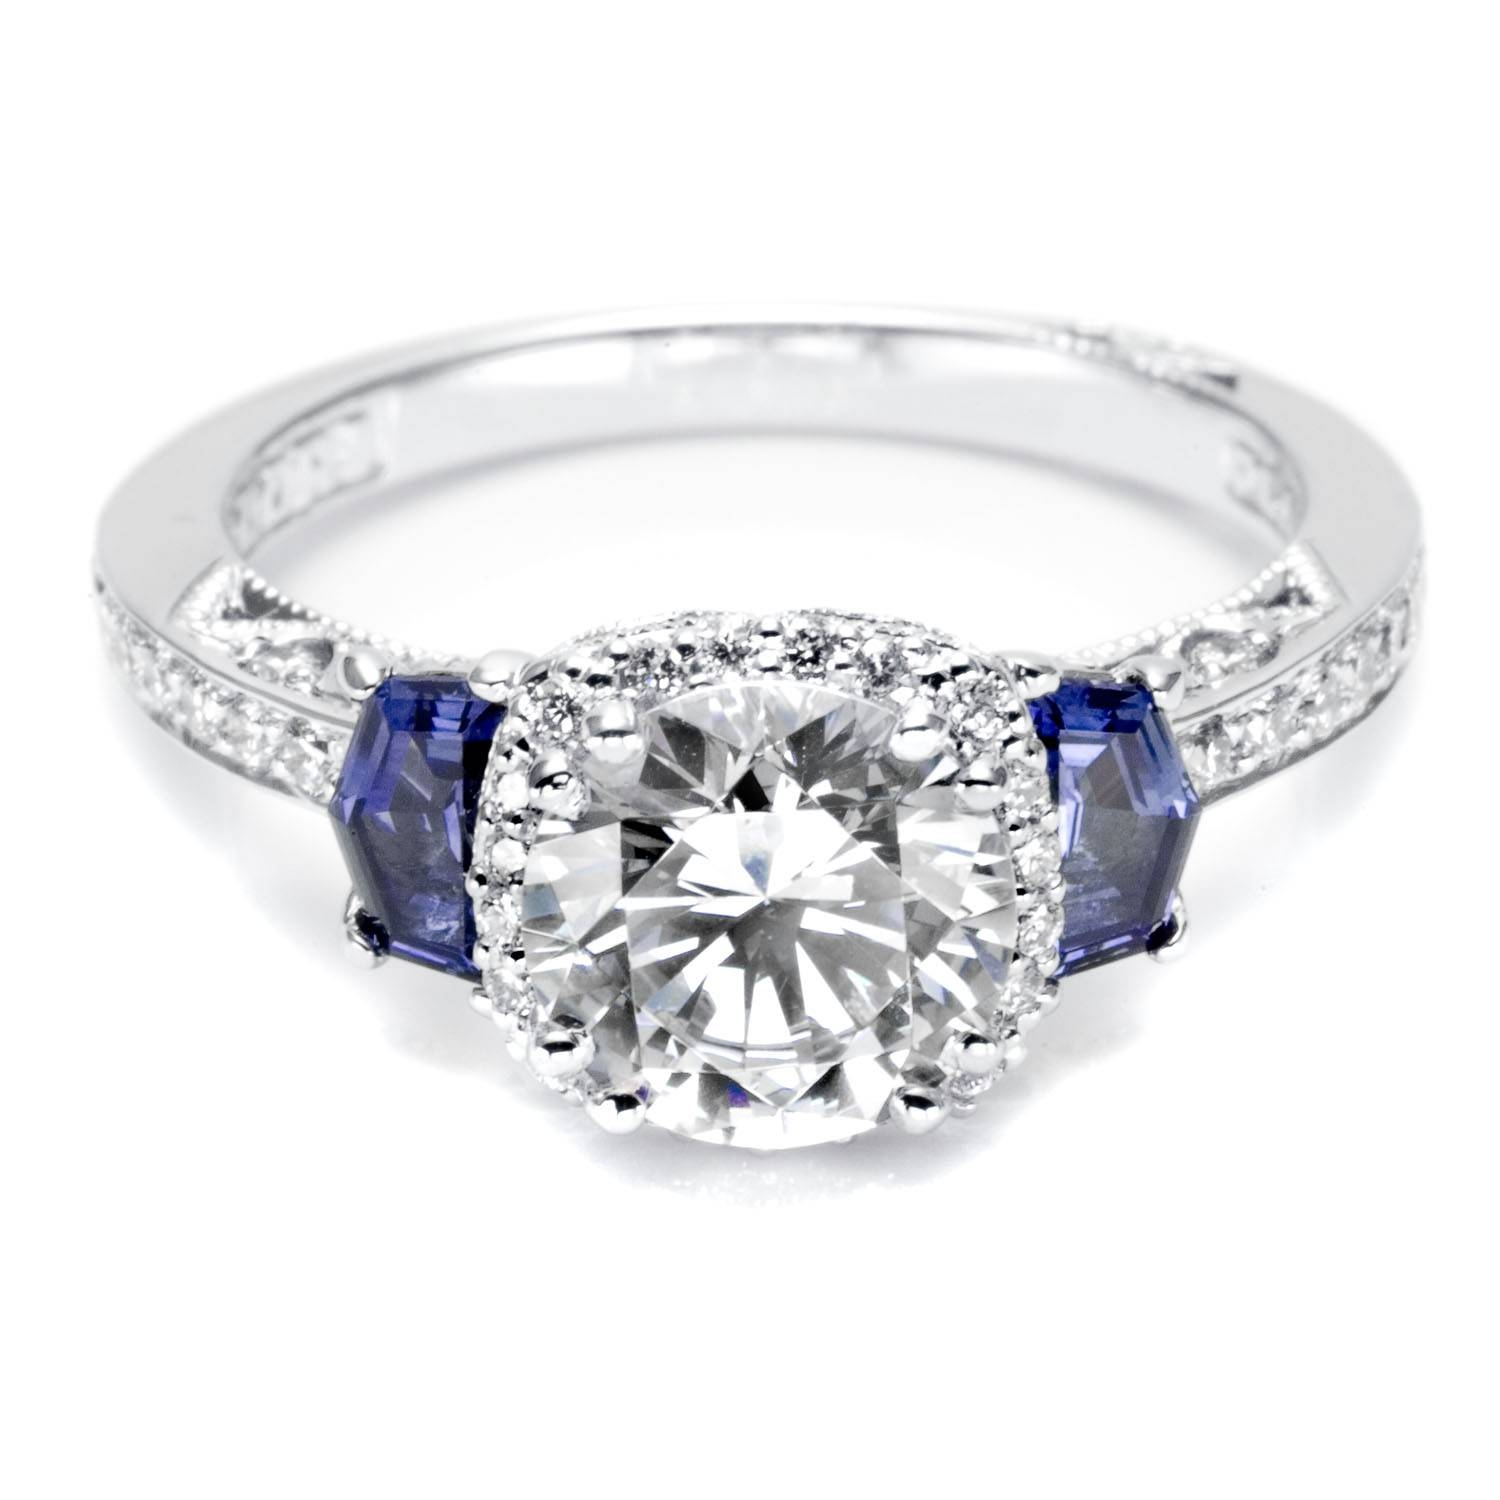 Engagement Rings : Holts Rings Diamond Engagement Rings With Within Engagement Rings With Sapphires (View 6 of 15)